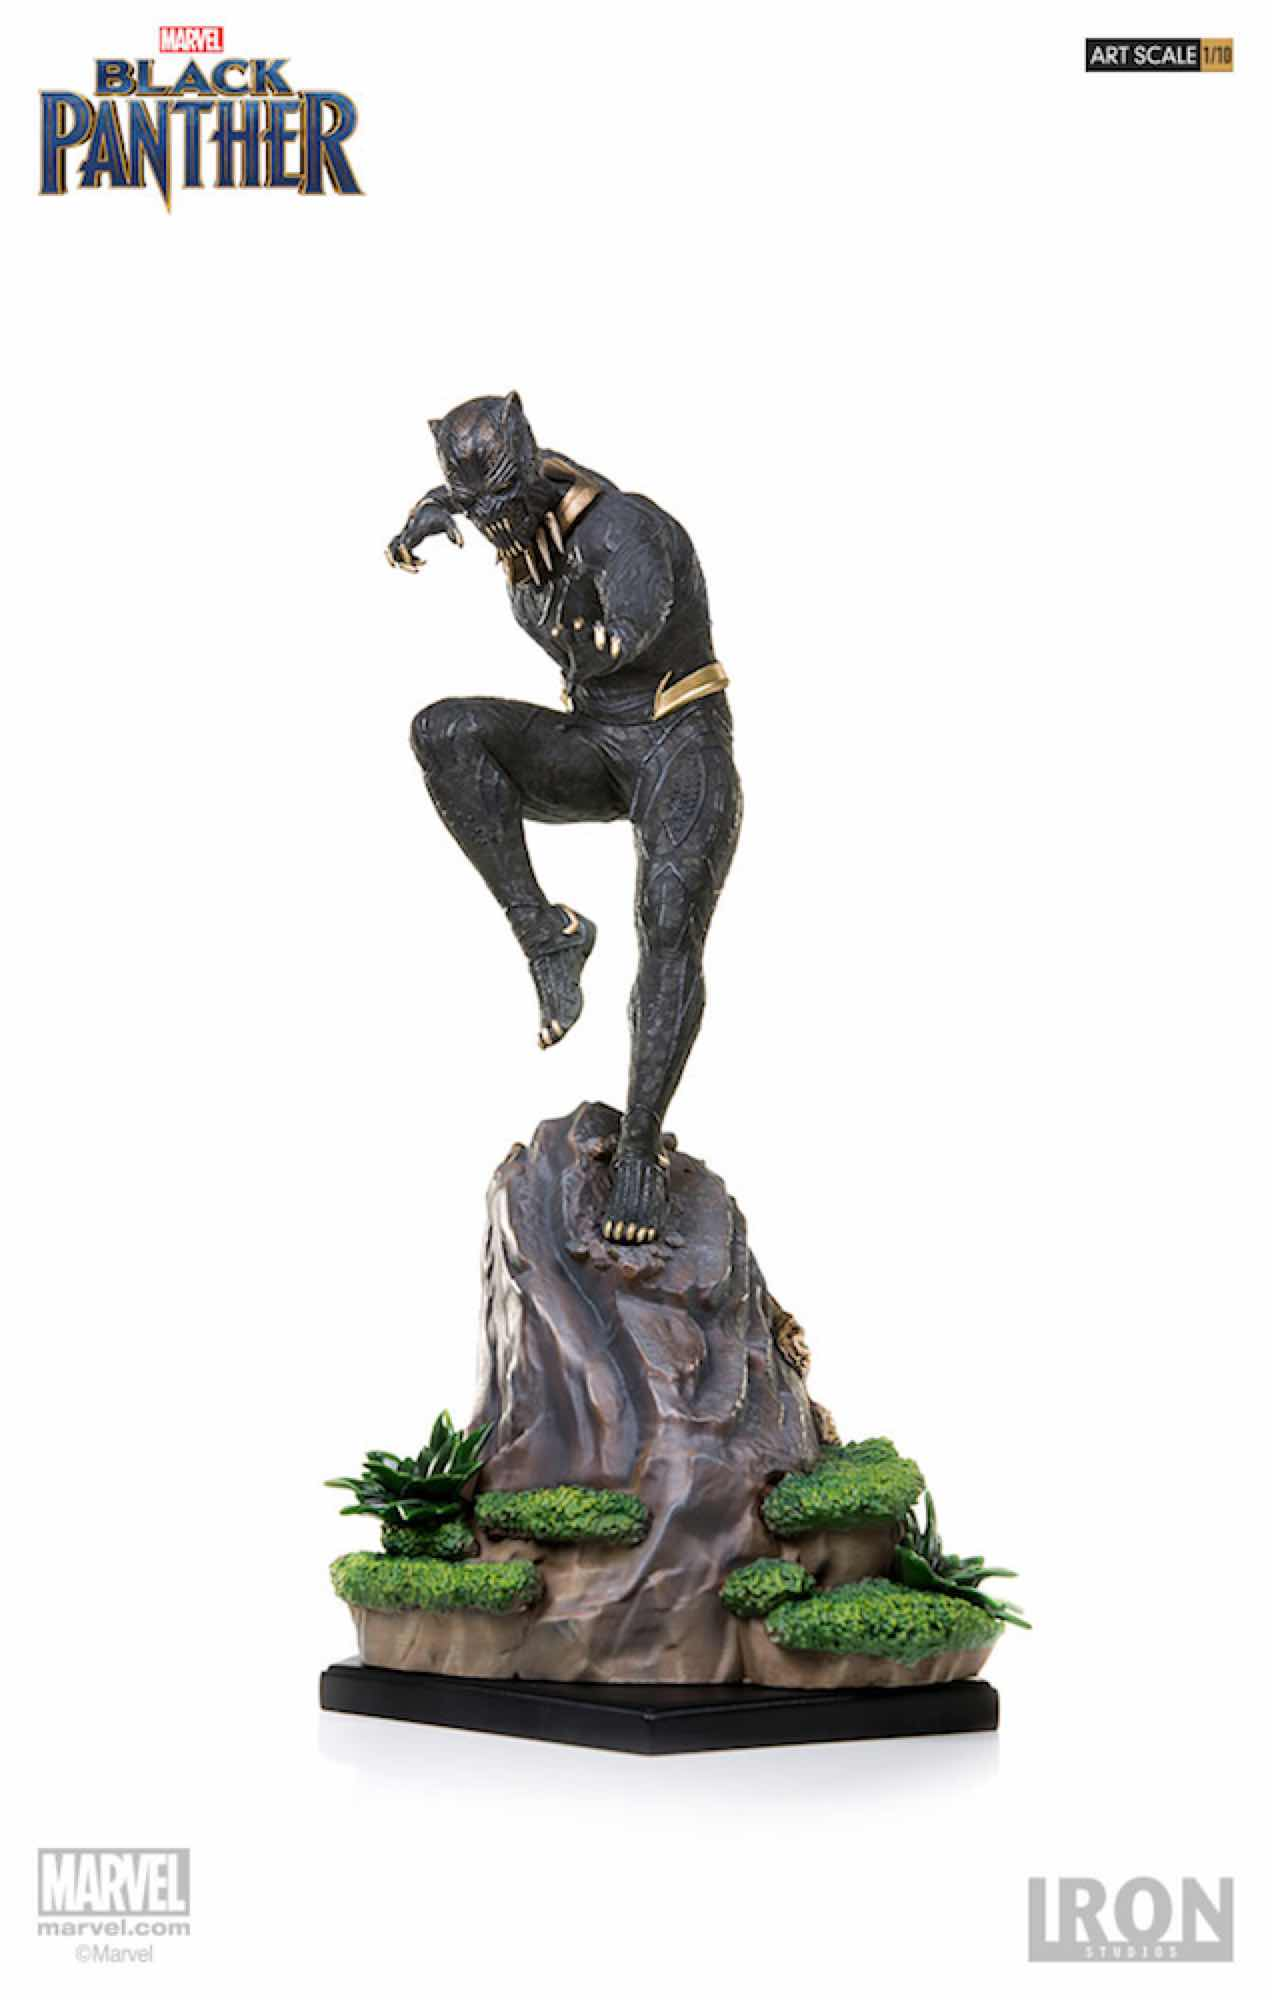 KILLMONGER FIG 27 CM BLACK PANTHER IRON STUDIOS BDS 1/10 ART SCALE